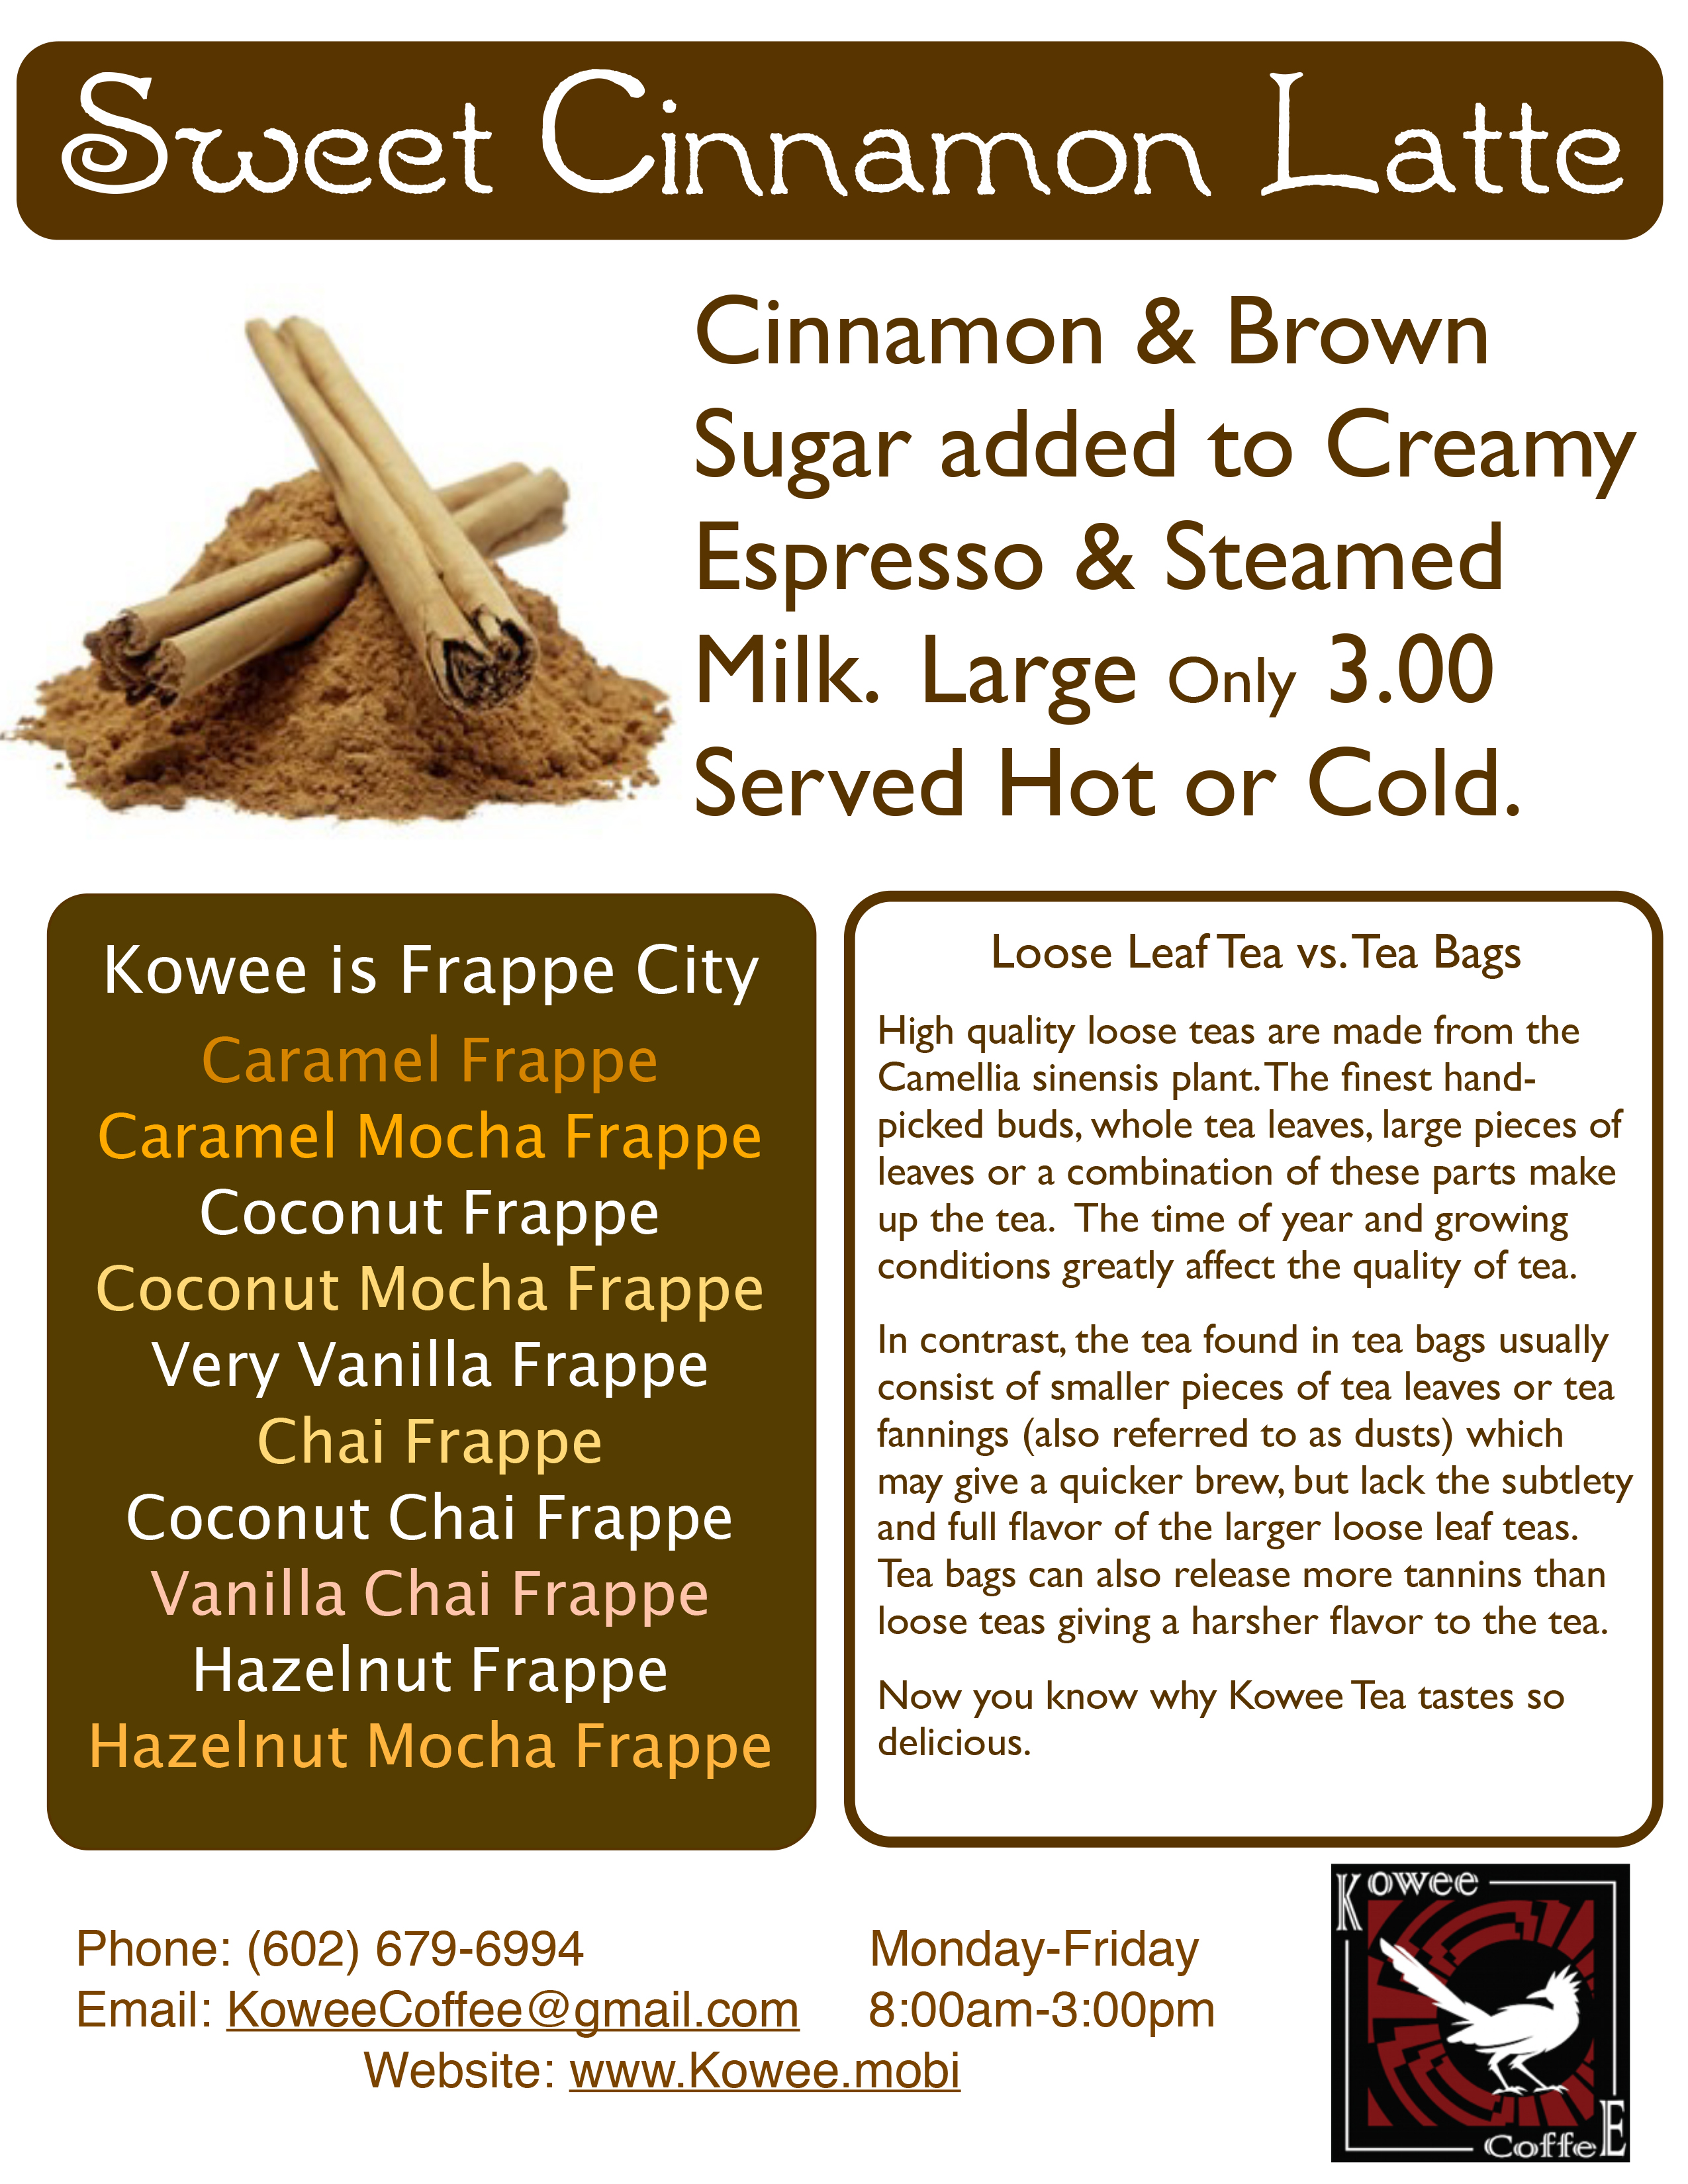 Sweet Cinnamon Special July 2013